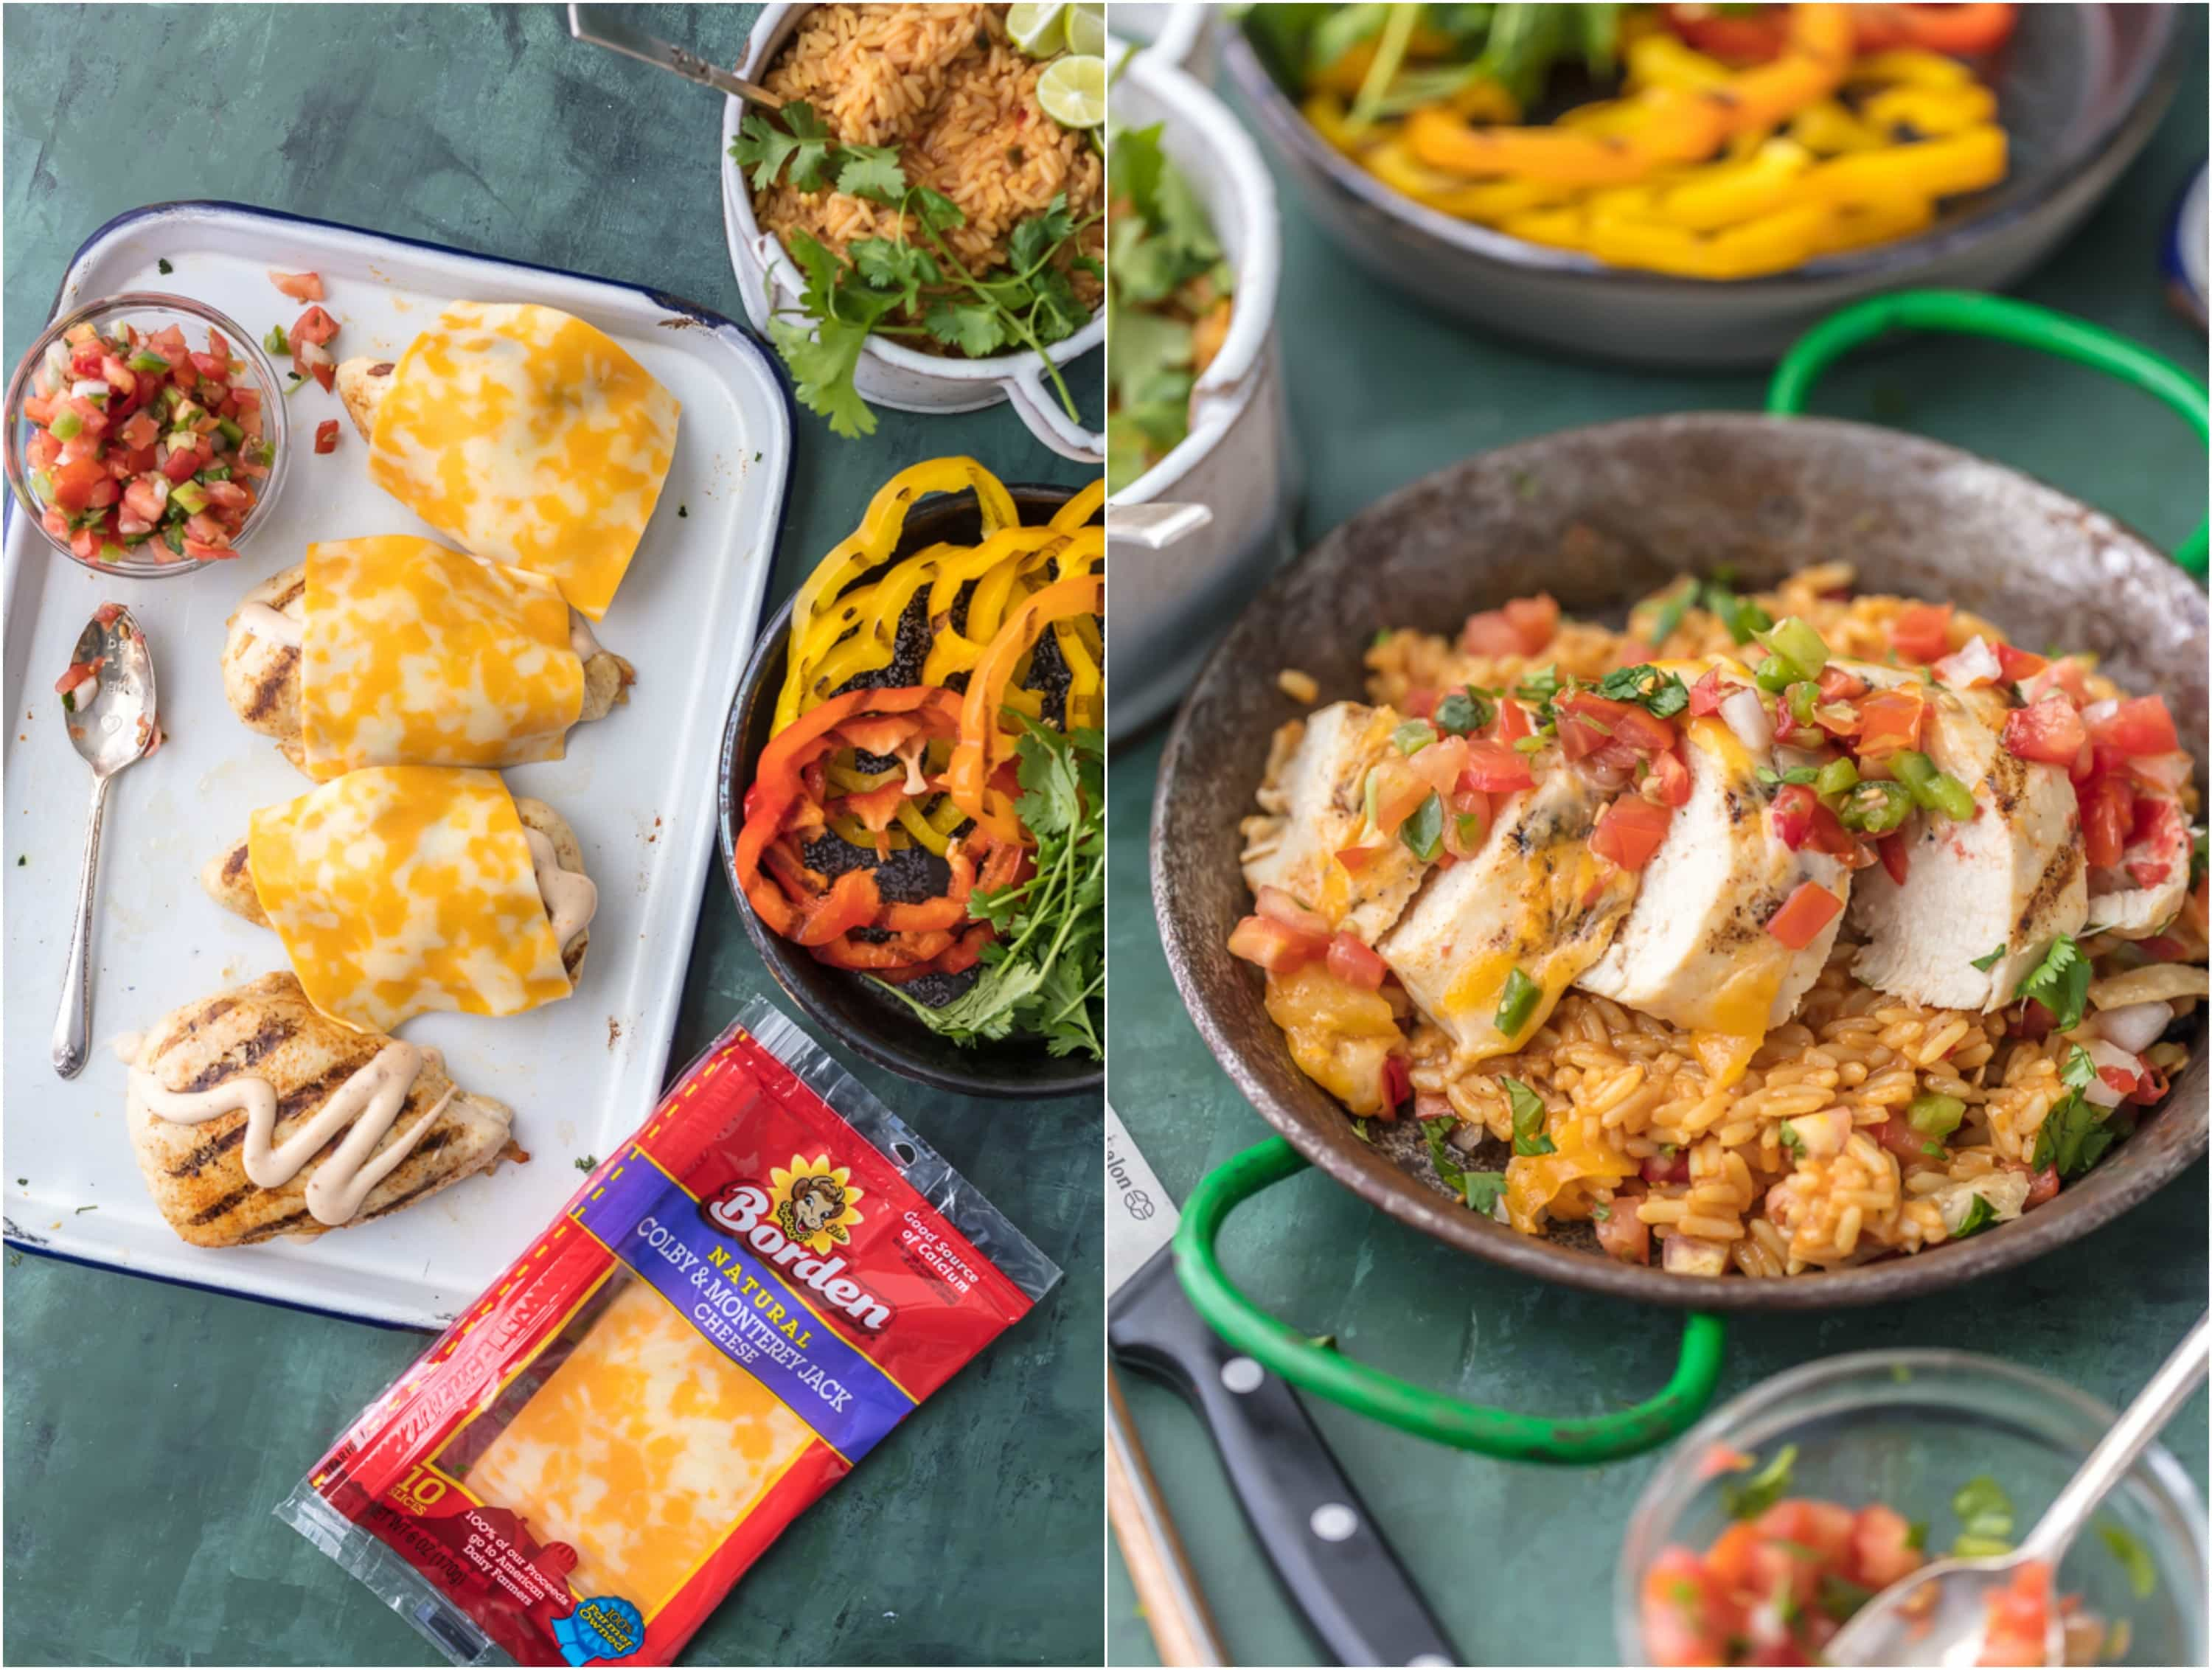 FIESTA LIME CHICKEN (Applebee's Copycat Recipe) is our favorite easy grilled Summer meal! This Lime Chicken is served on a bed of Mexican rice and topped with lime ranch, pico de gallo, and tortilla strips. I order this Fiesta Lime Chicken Recipe at Applebee's every single time, and now you can make it at home! It's even better homemade, trust me.